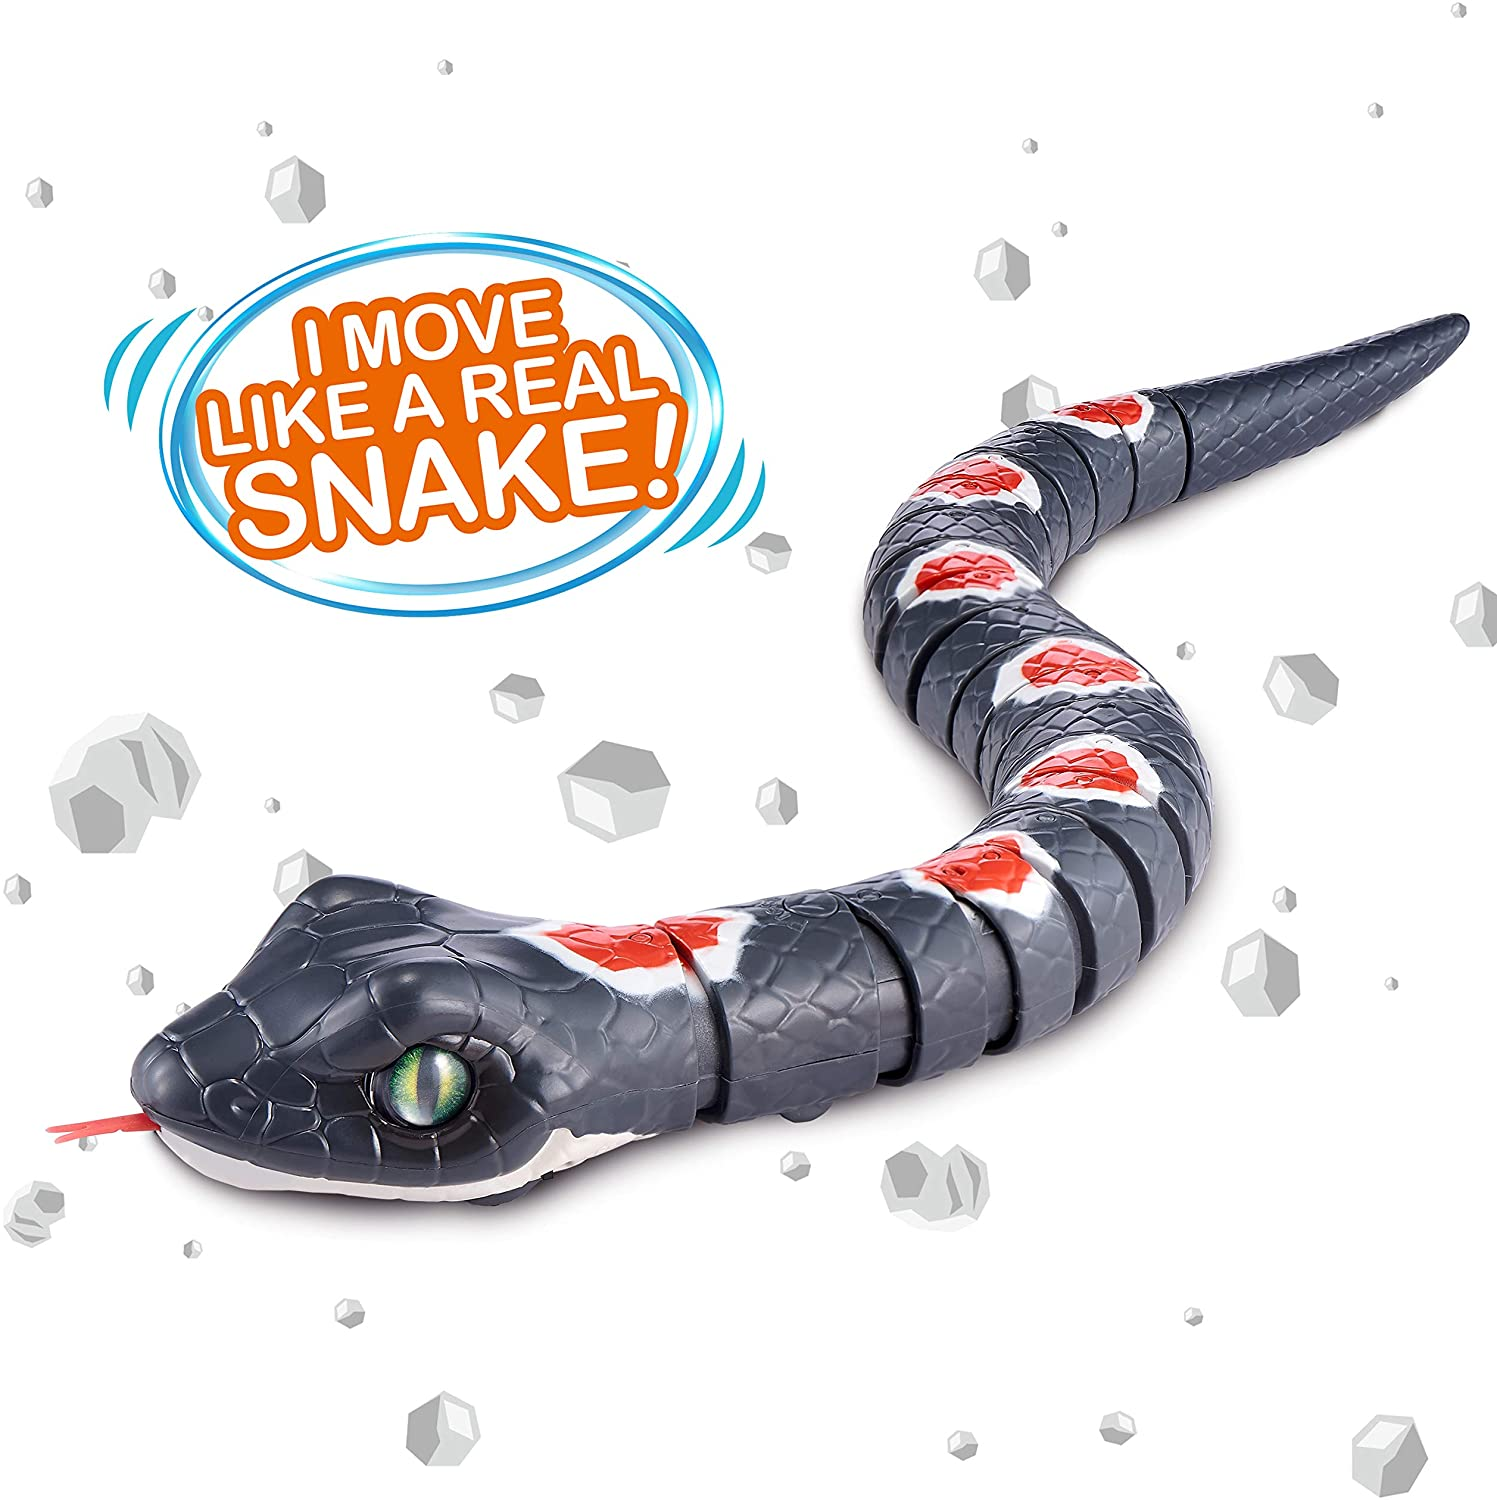 ROBO ALIVE Robo Alive Slithering Snake - TOYBOX Cyprus